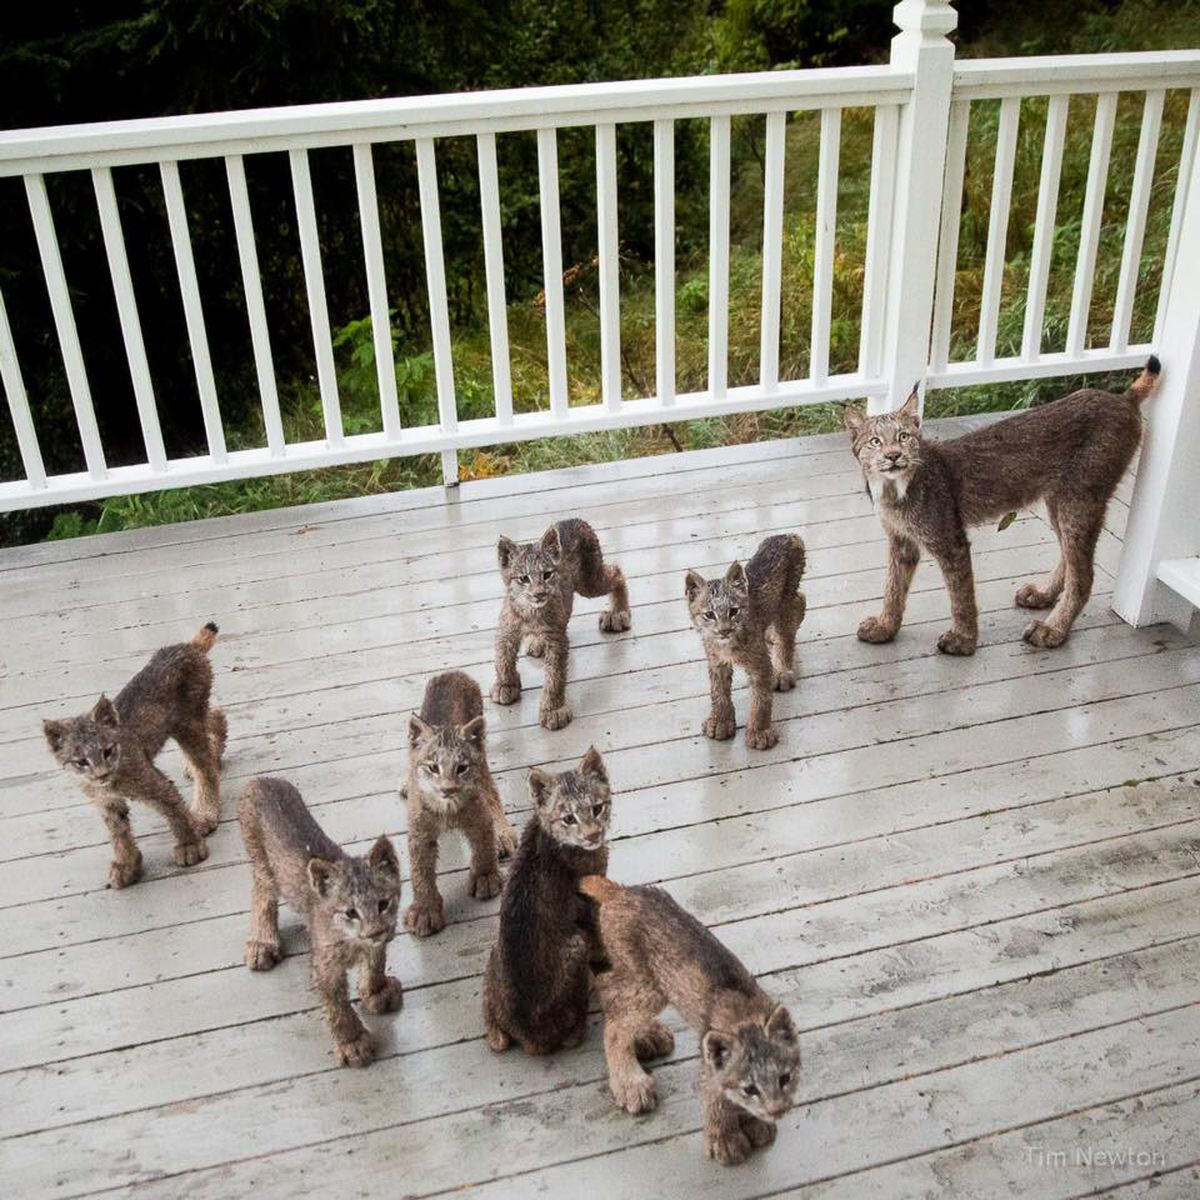 Eight lynx visited the home of Tim Newton at the end of September 2017. His new Facebook page has almost 20,000 followers as a result of the lynx photographs. (Tim Newton / tim-newton.pixels.com/)